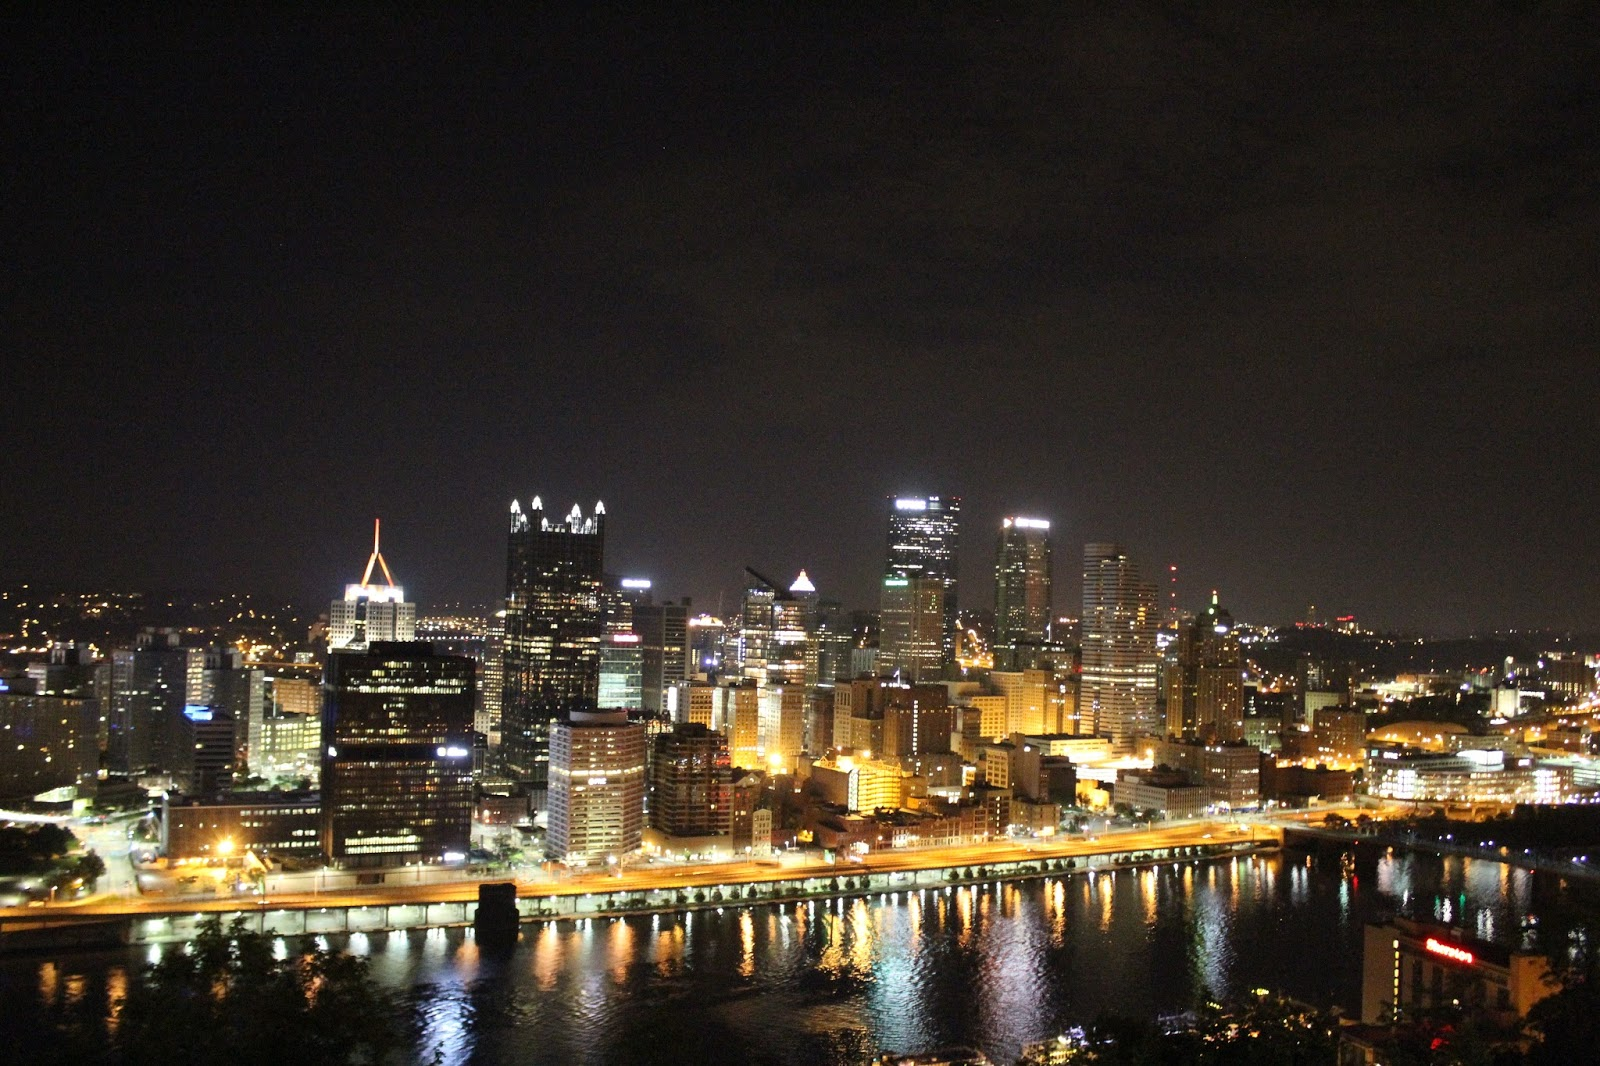 Night view of Pittsburgh Downtown